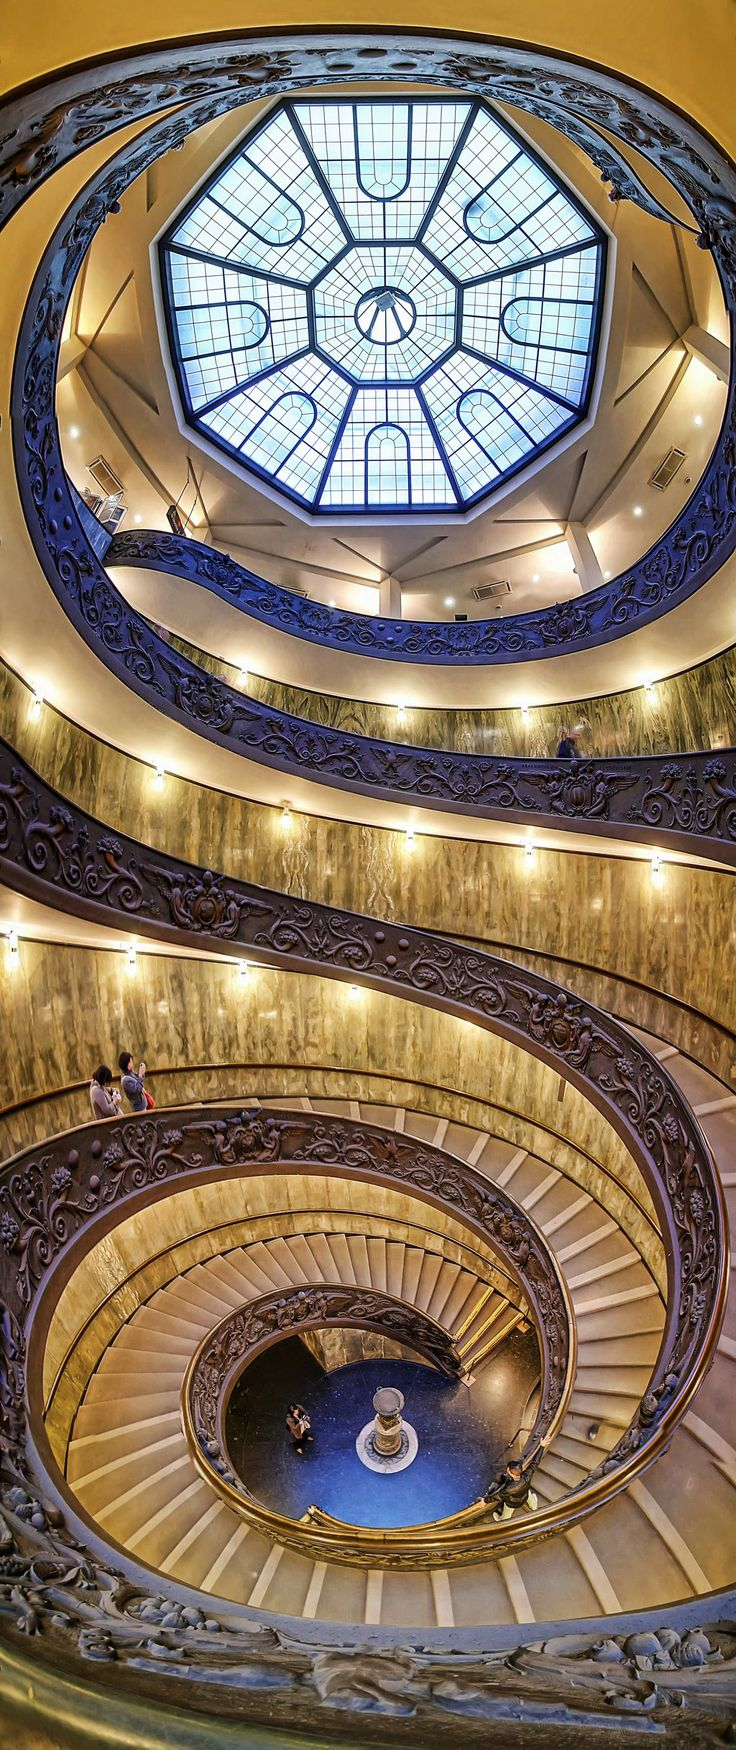 spiral staircase at the vatican museum architecture pinterest museums vatican city and rome. Black Bedroom Furniture Sets. Home Design Ideas